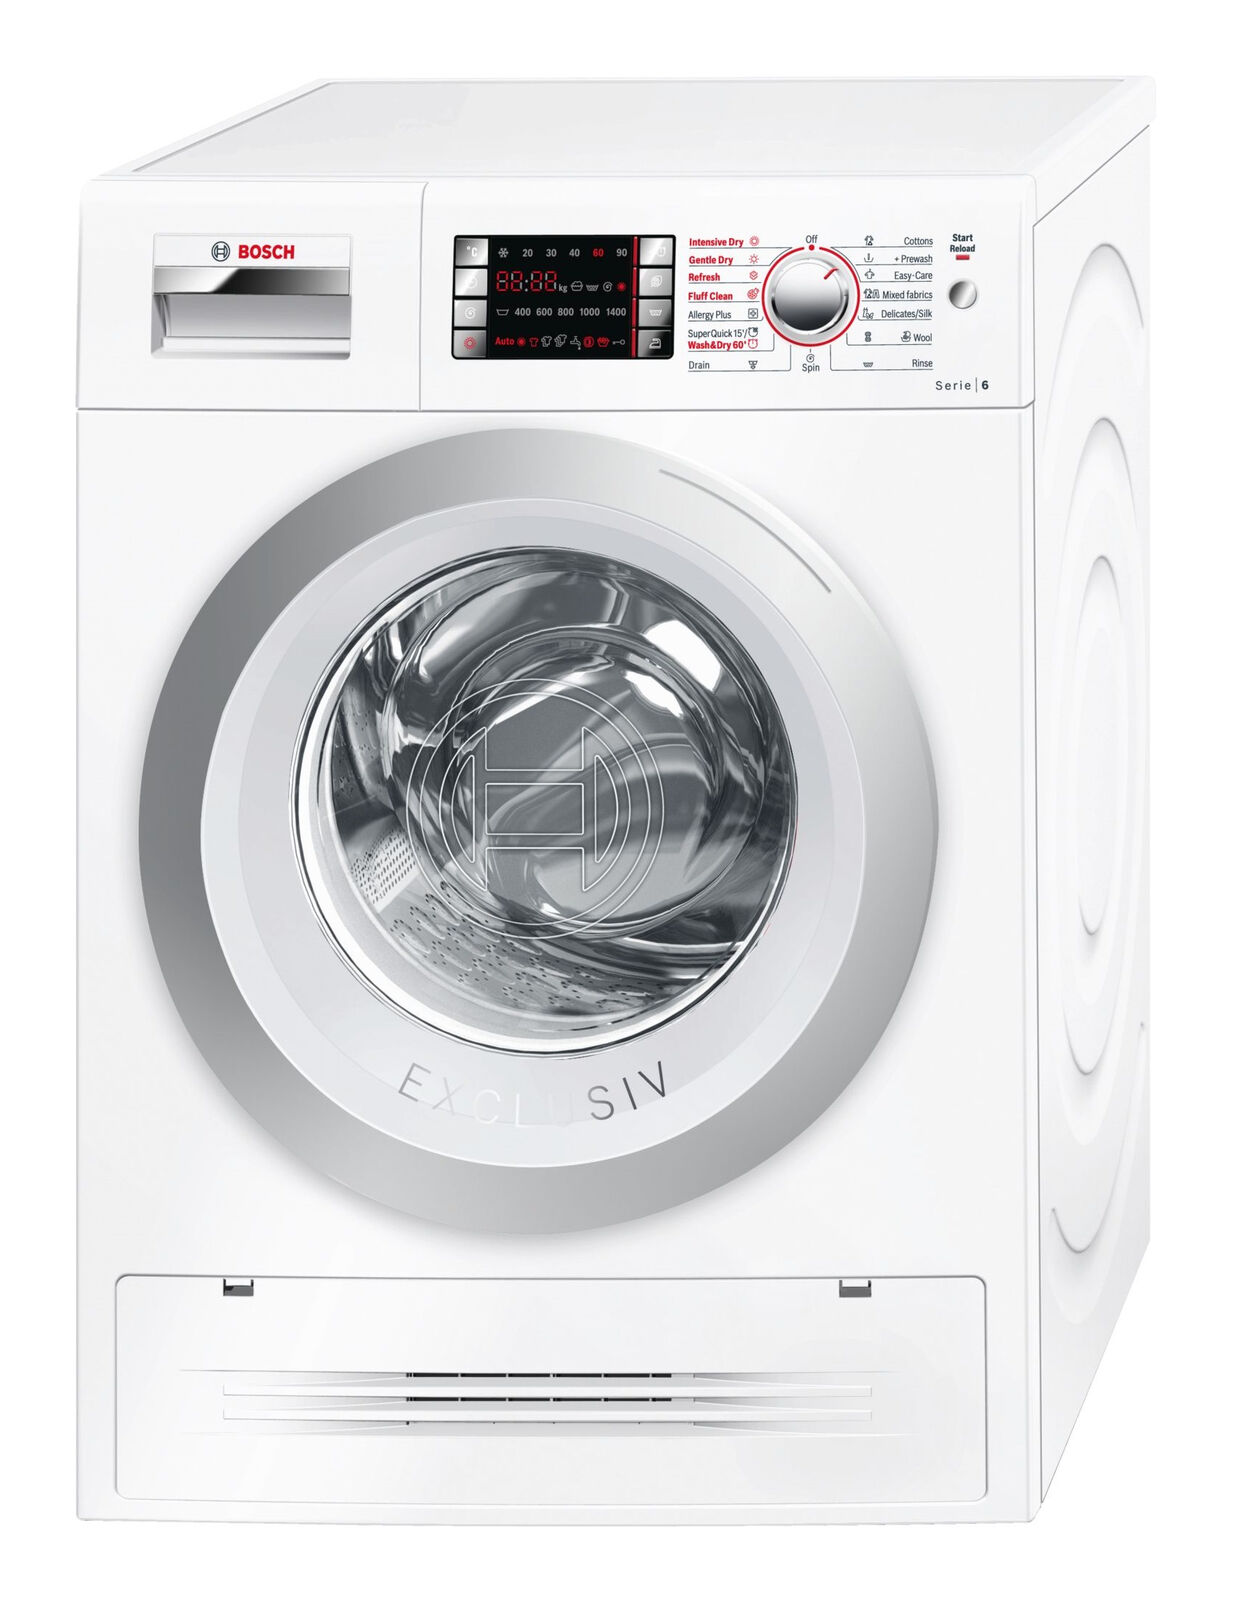 Bosch WVH AU Washer and Dryer bo